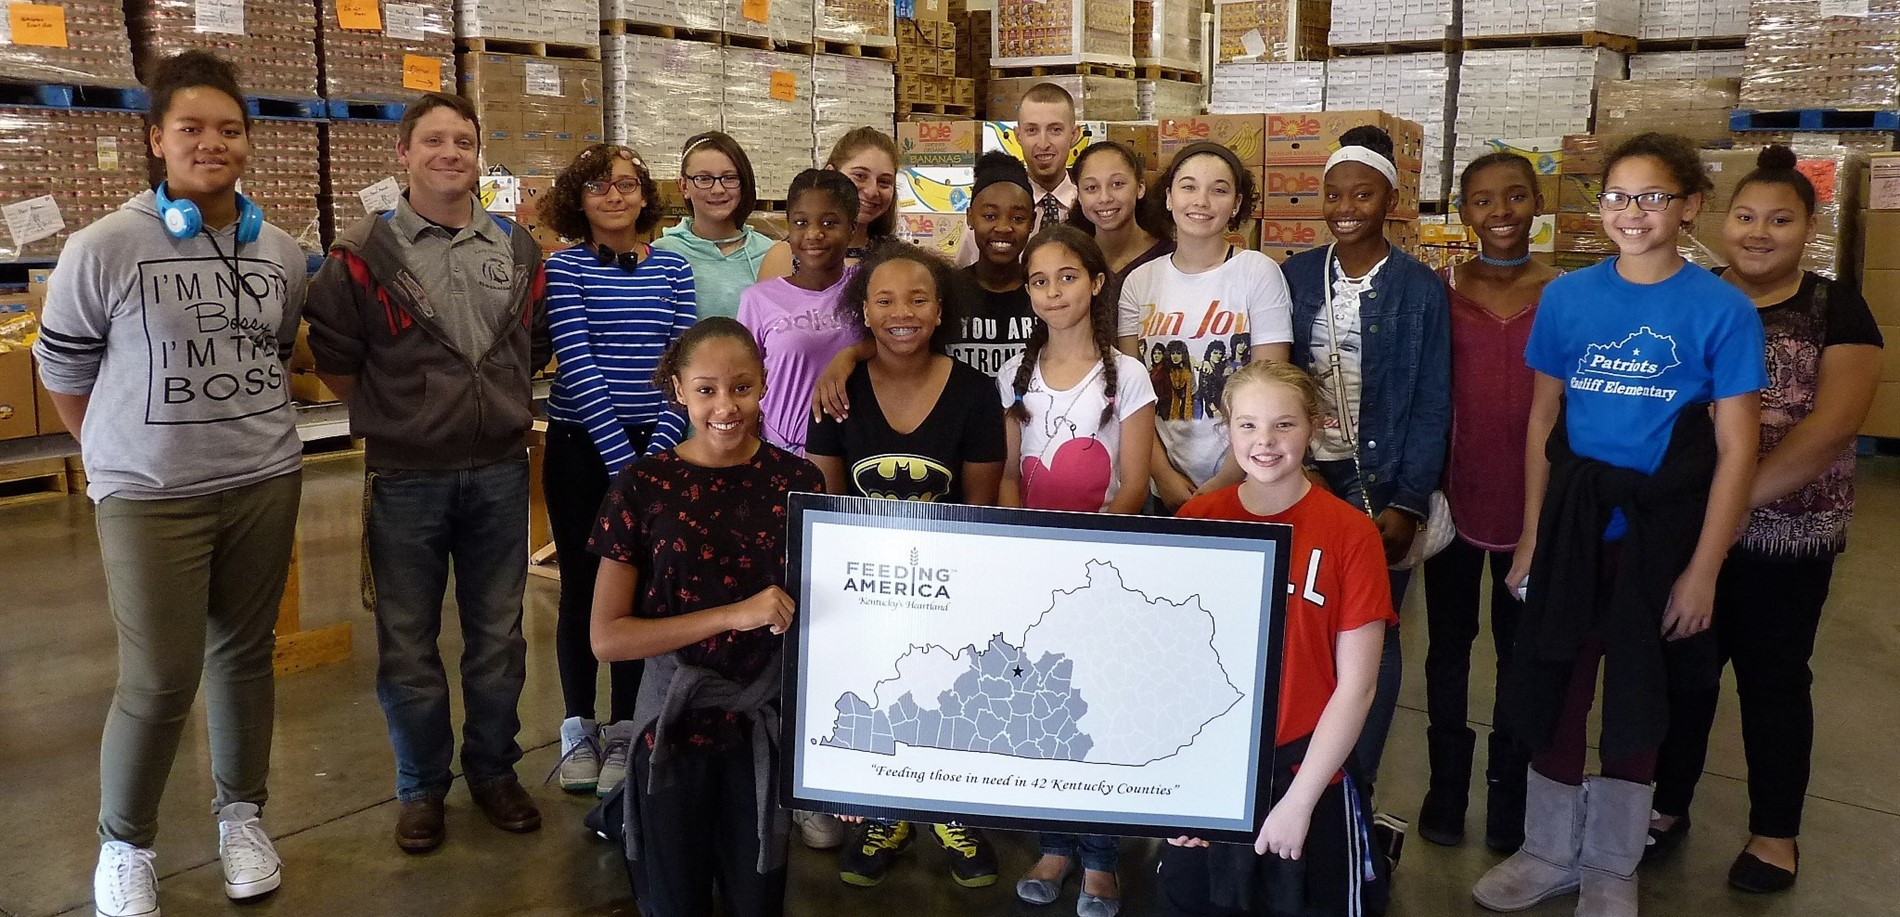 The North Middle School girls basketball team volunteered at Feeding America.